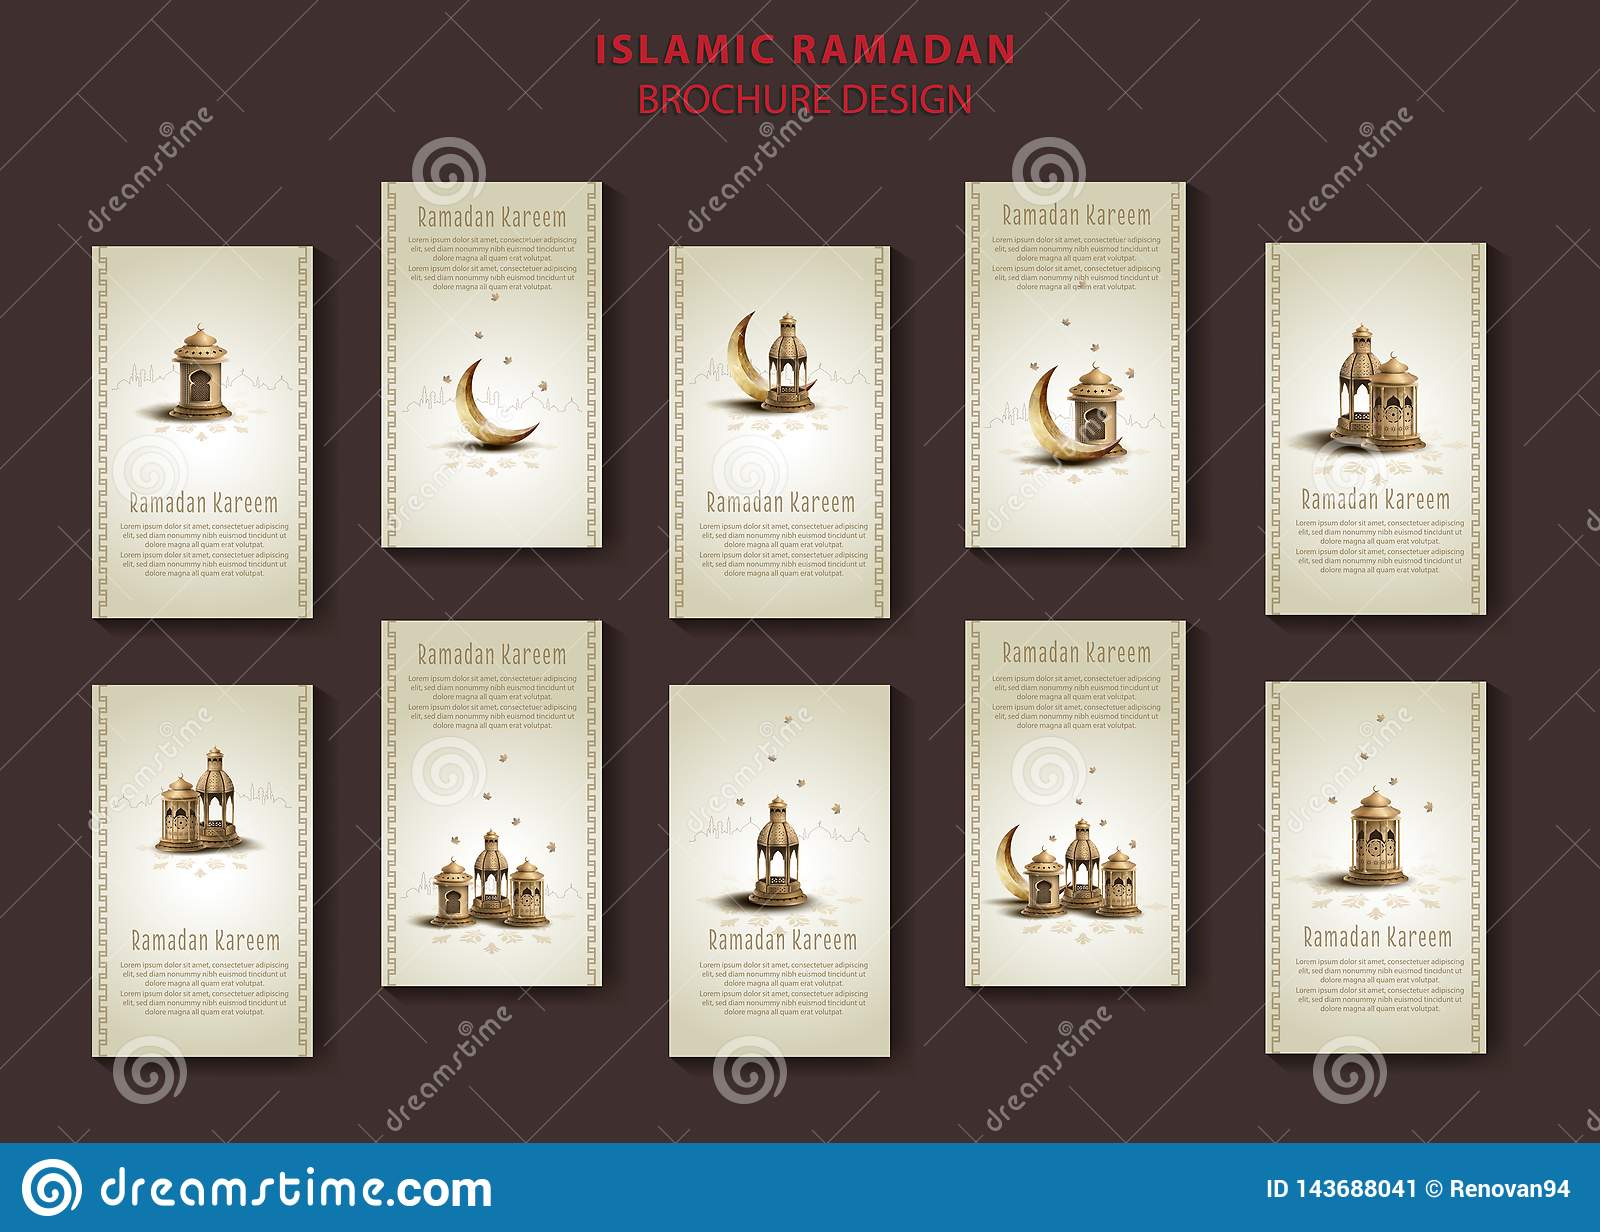 Islamic greeting ramadan kareem brochure templates design